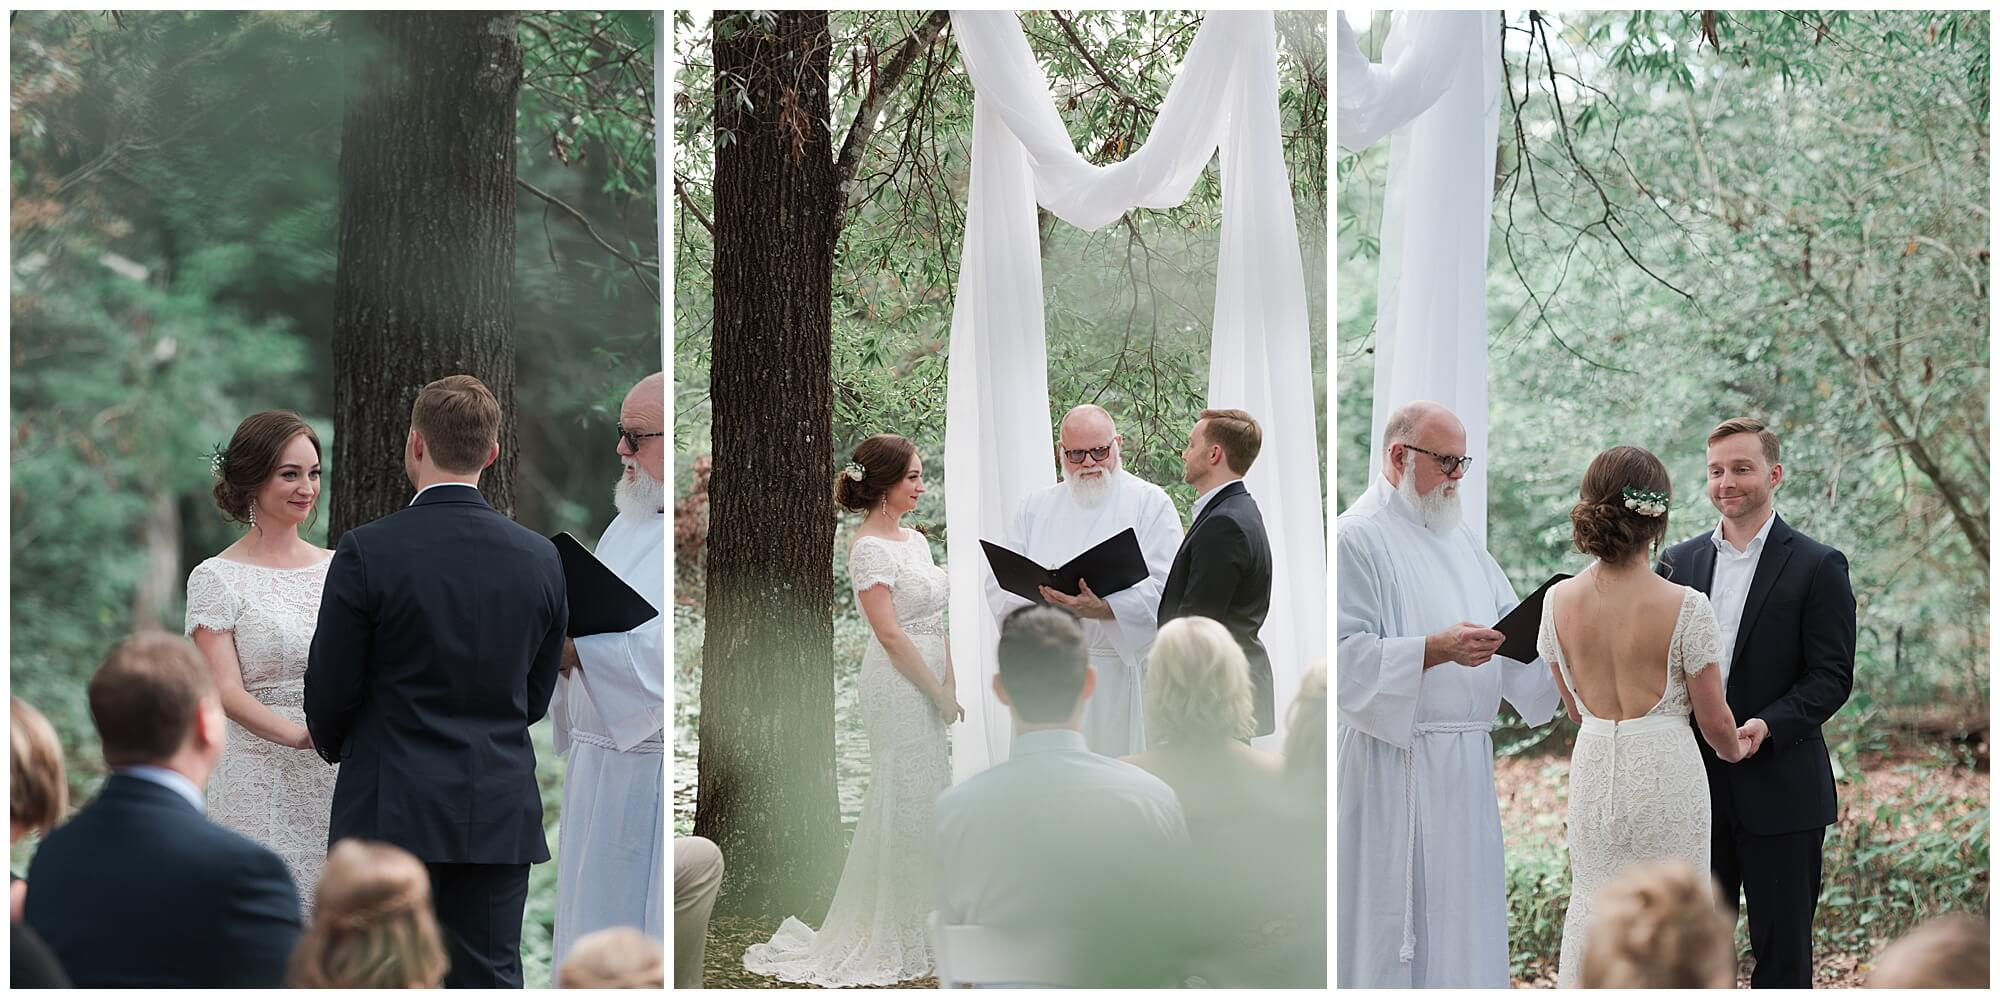 wedding ceremony at the Houston Arboretum in Houston Texas by wedding photographer Swish and Click